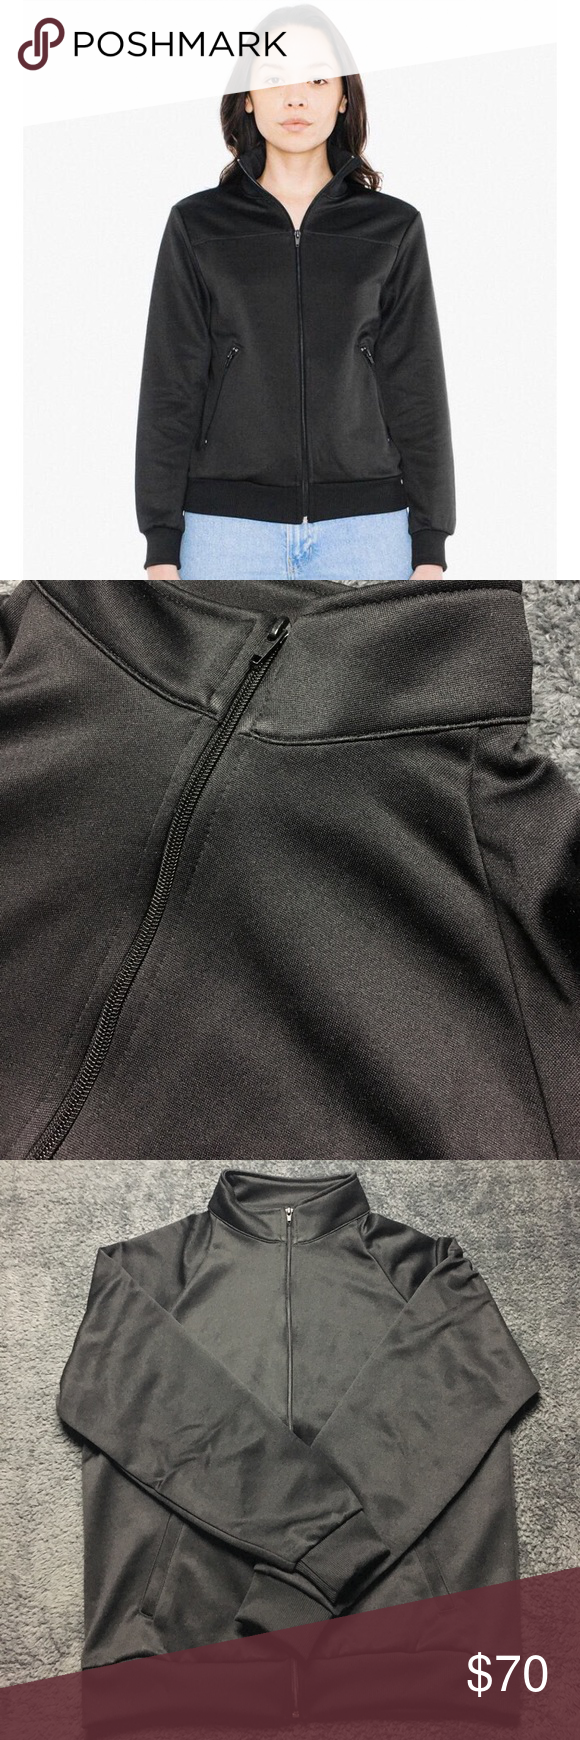 American Apparel ~ Black ~ Women's Track Jacket Condition :: New with tags 🏷  Brand 🛍 ::  American Apparel   Size :: M ; Medium   Description :: Model wearing a size small. Never worn before. Poly/Cotton for superior shape. Ripped mock neck collar with full zipper. American Apparel Jackets & Coats